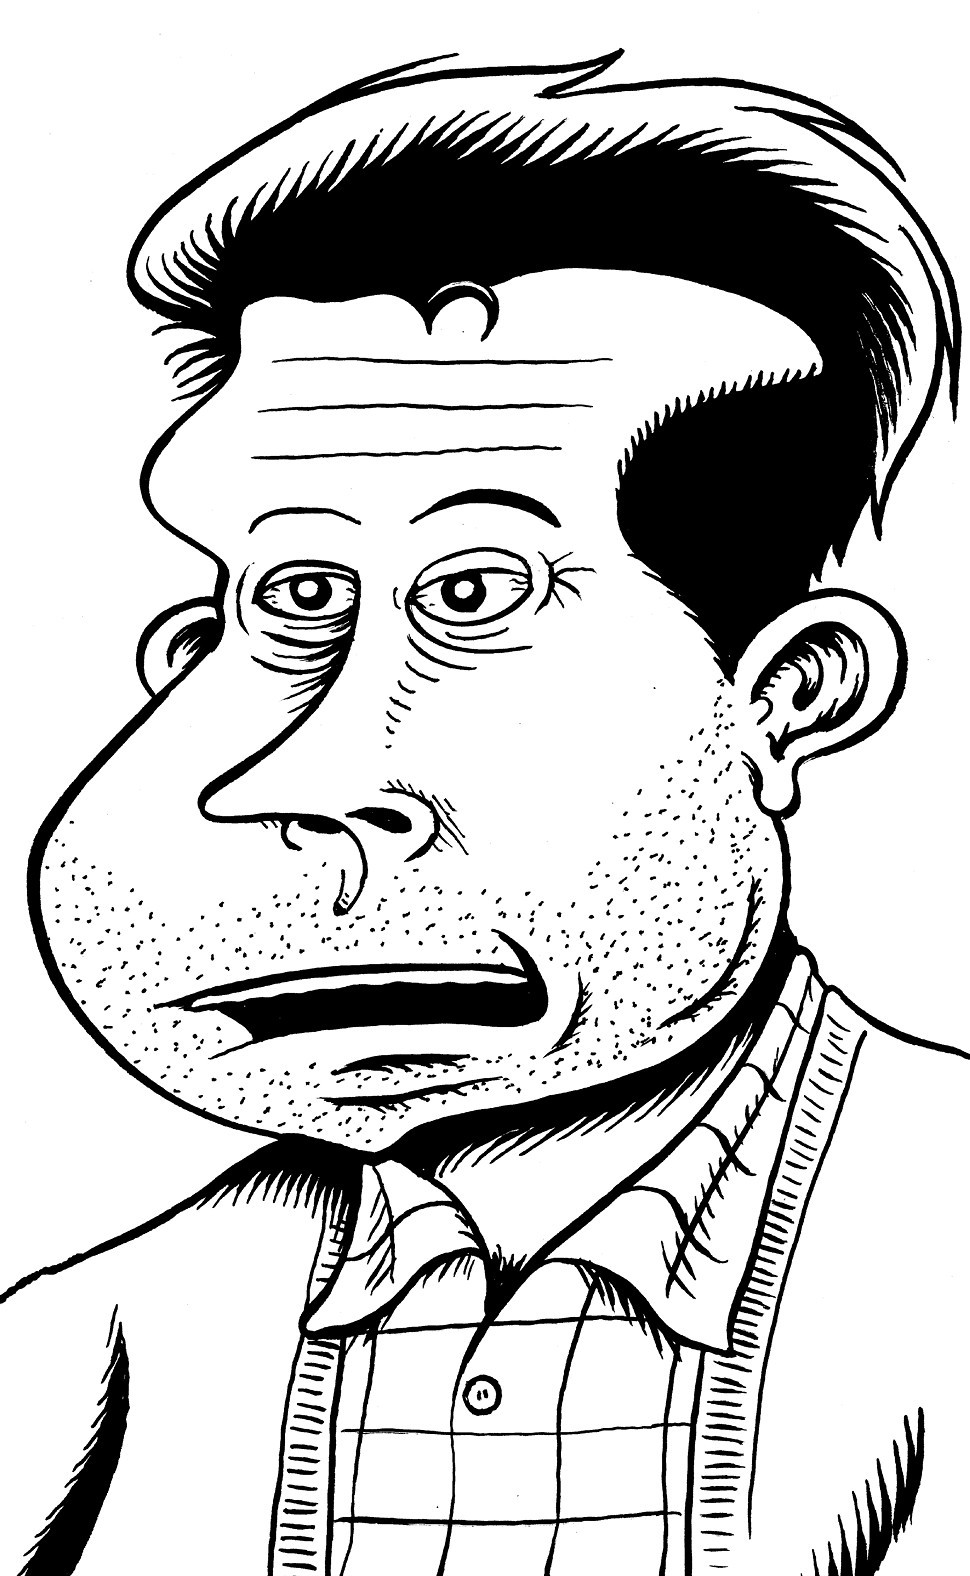 Peter Bagge, a self portrait